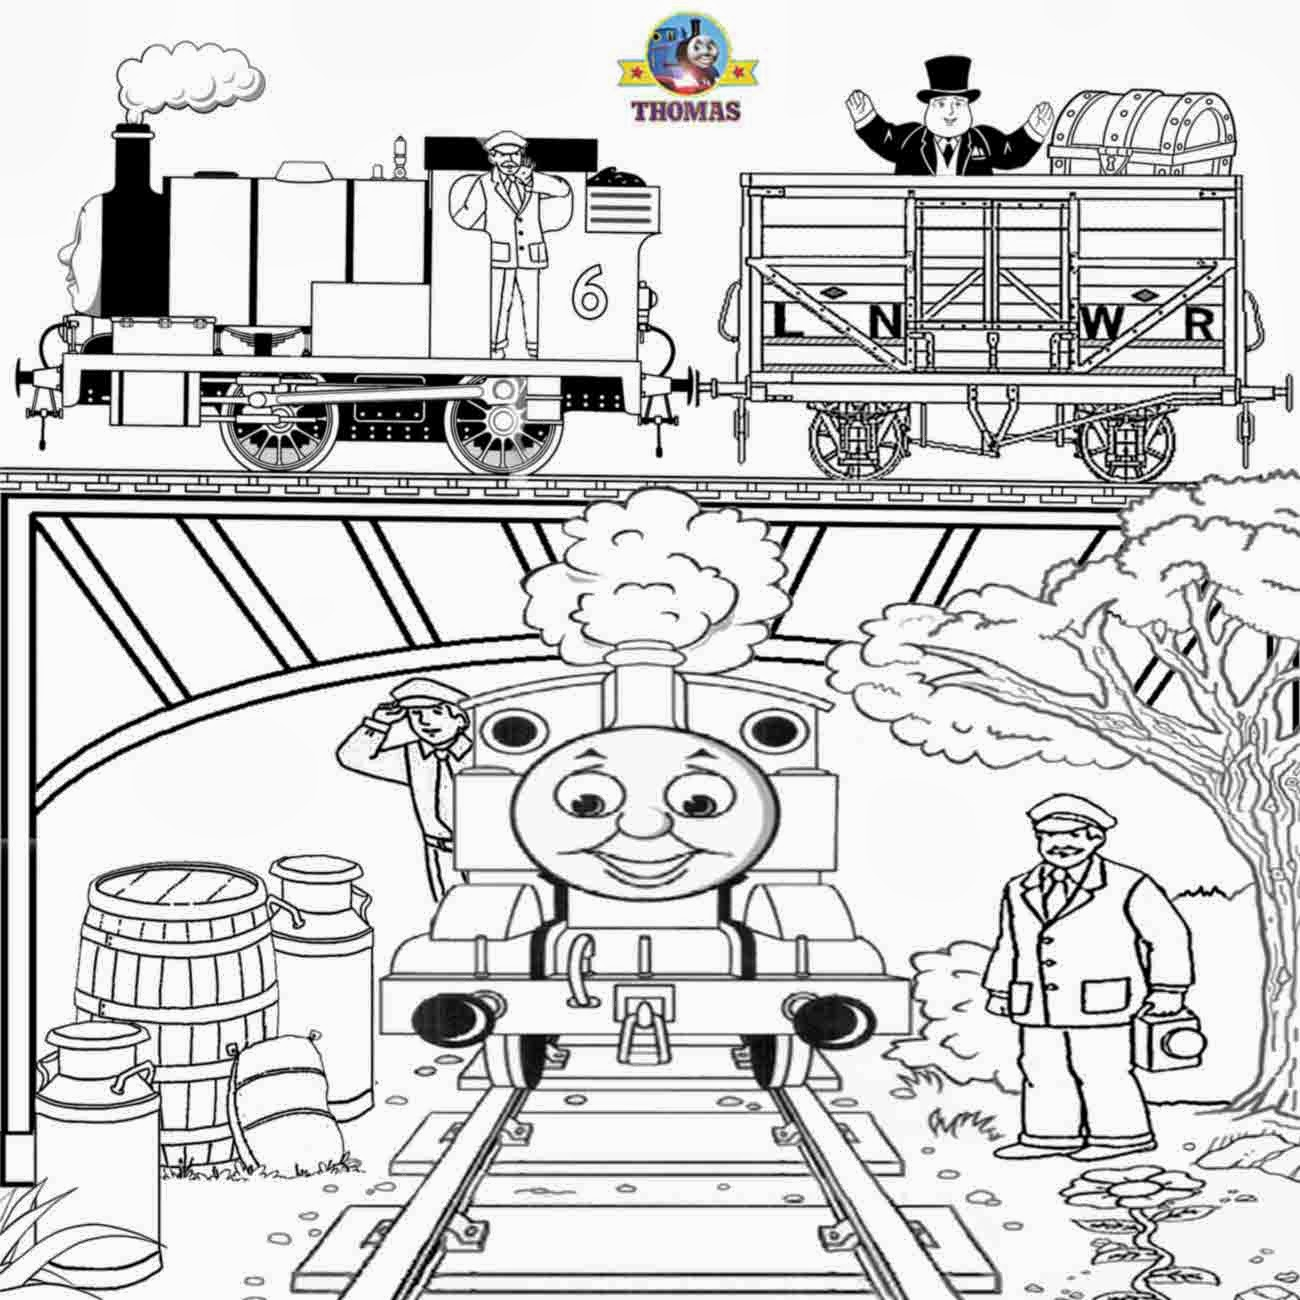 thomas and his friends coloring pages 30 free printable thomas the train coloring pages and coloring thomas pages his friends